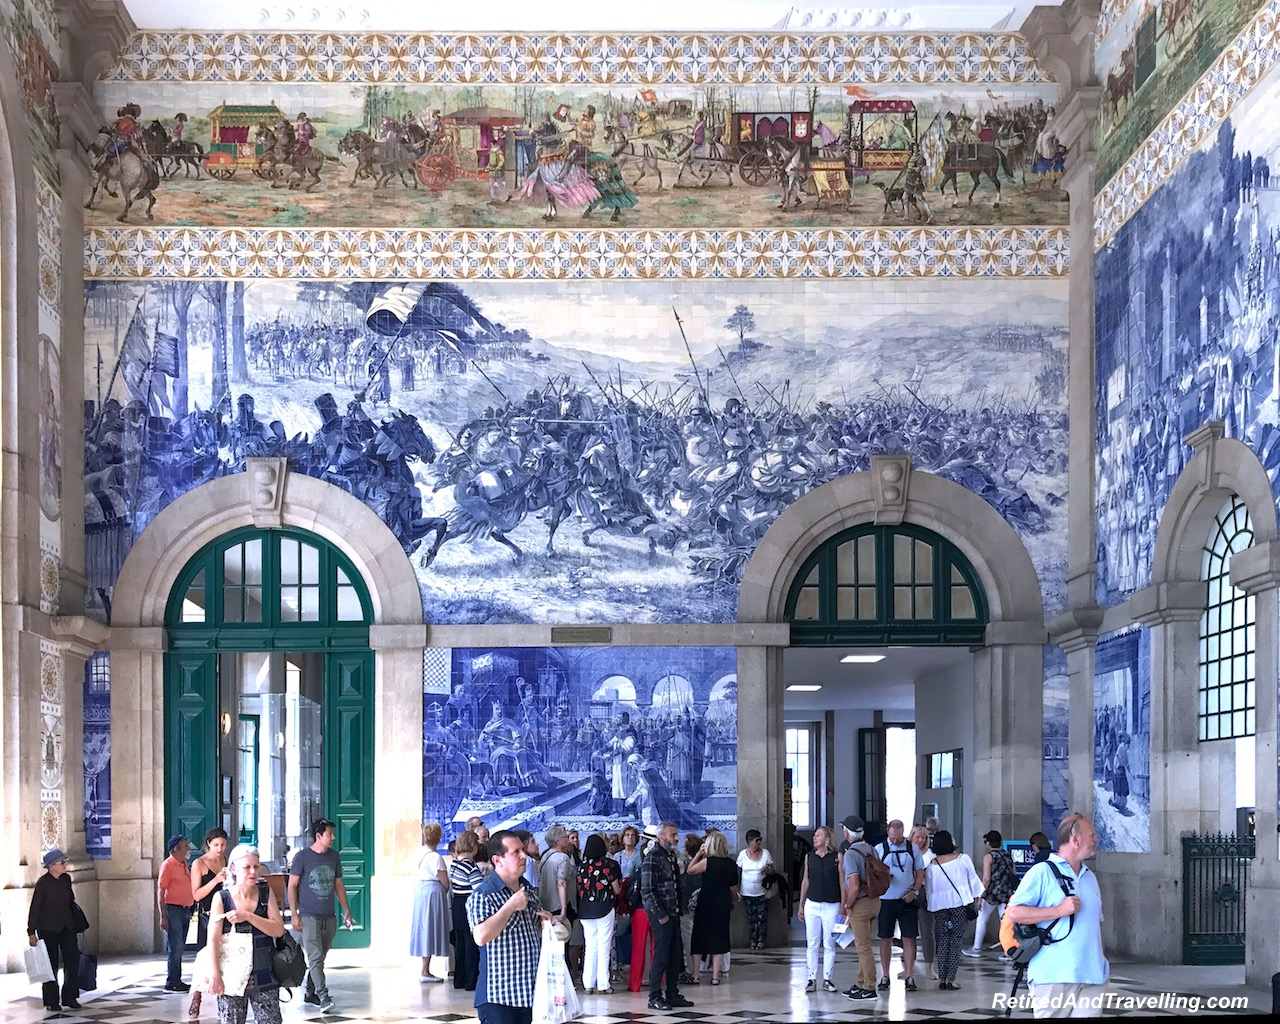 Sao Bento Railway Station Tiles - Art Everywhere When We Walked Around Porto.jgp